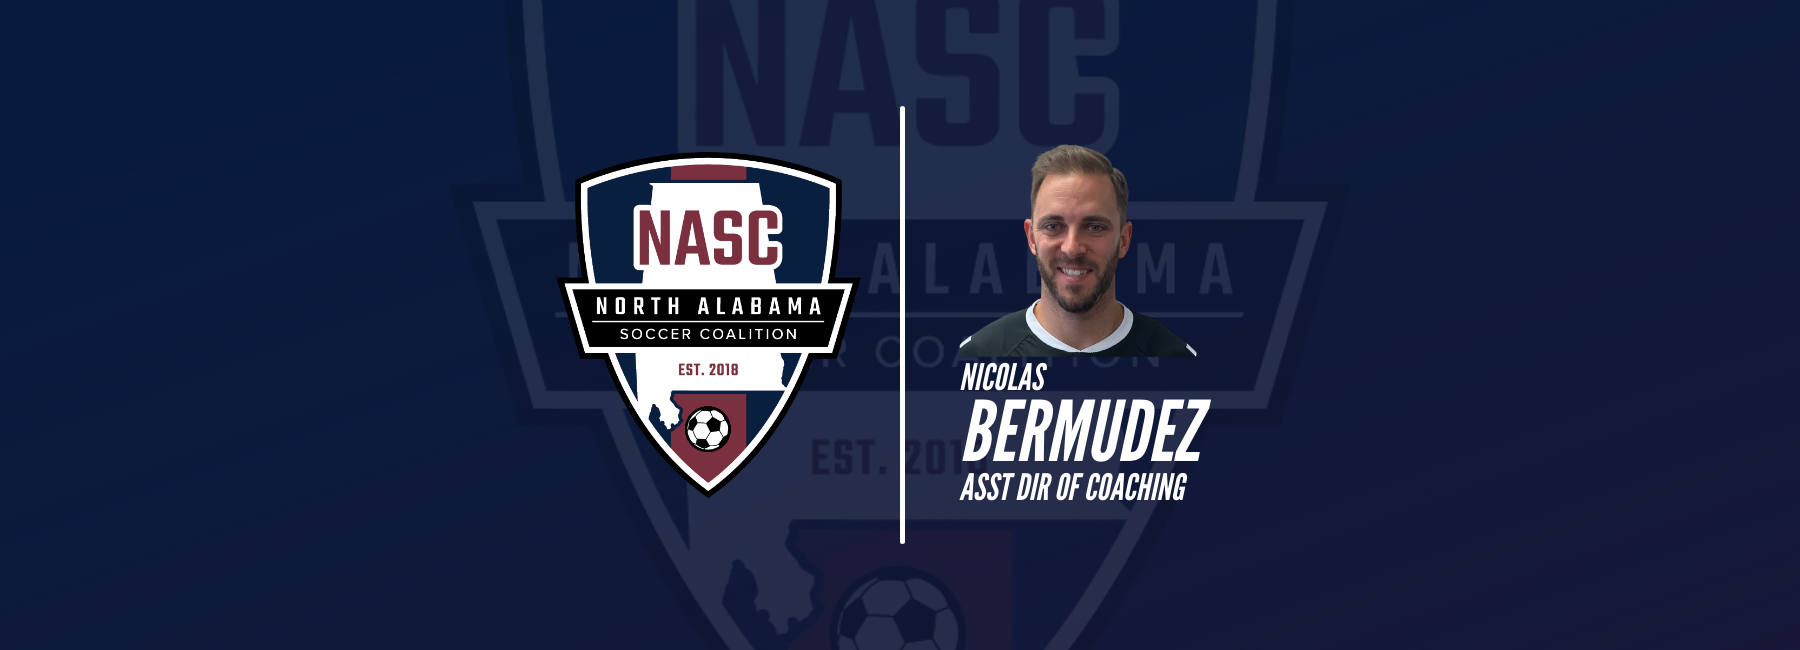 WELCOME COACH NICO BERMUDEZ TO NASC